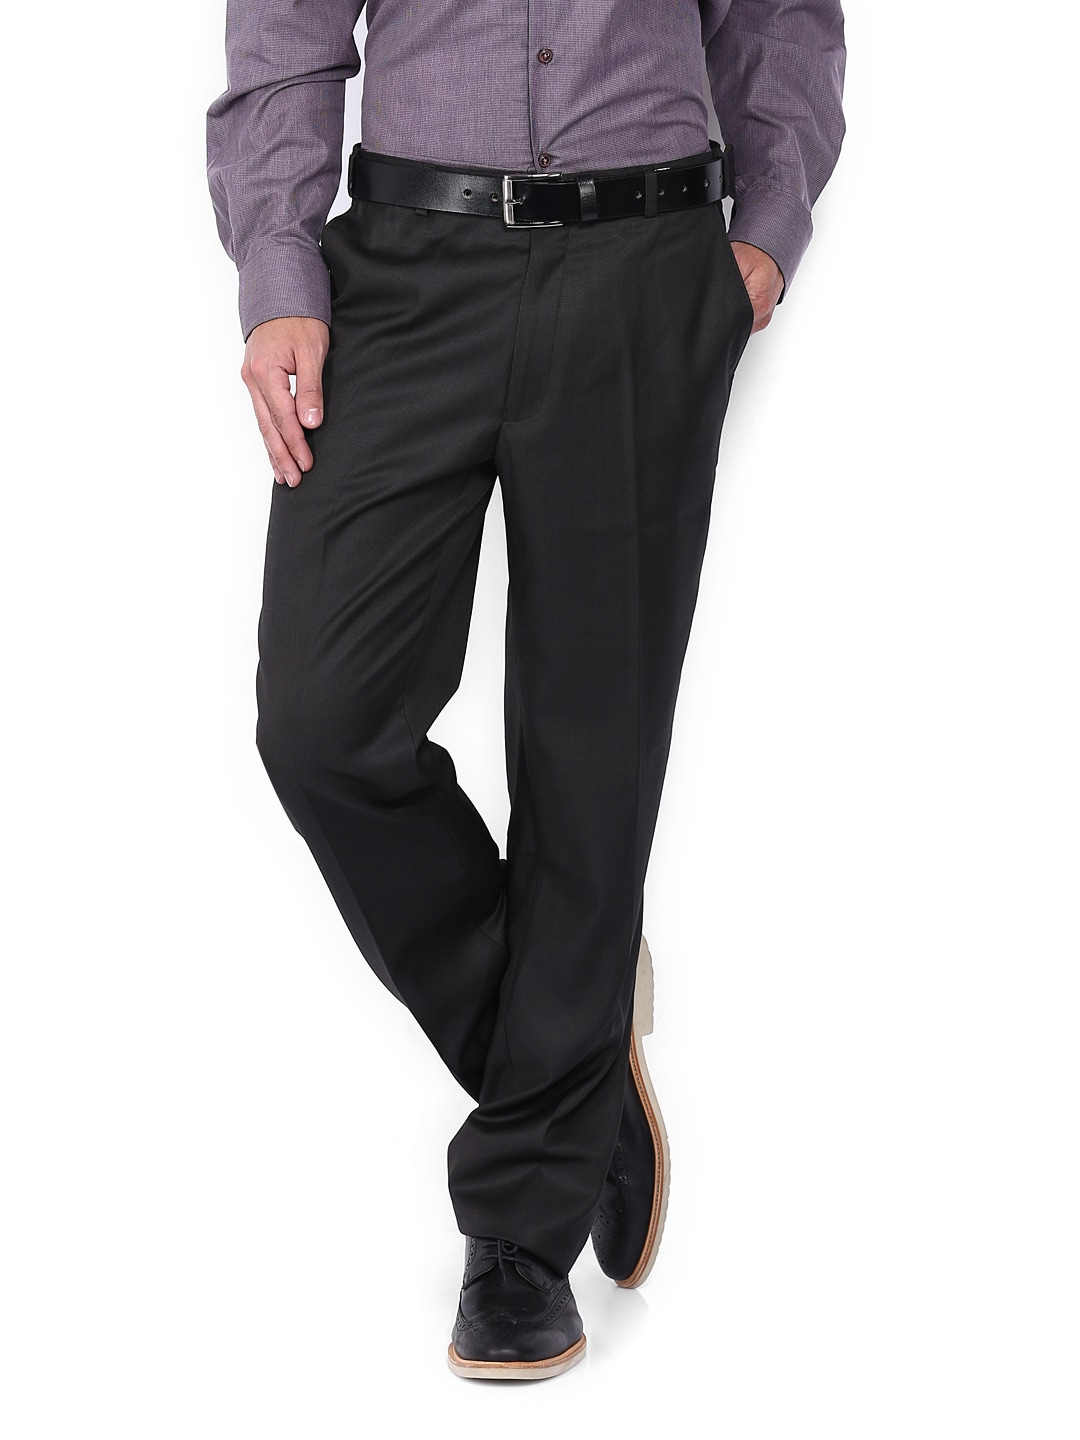 2c9dc8ce6ad Oxemberg ot0002 Men Black Army Regular Fit Formal Trousers- Price in India